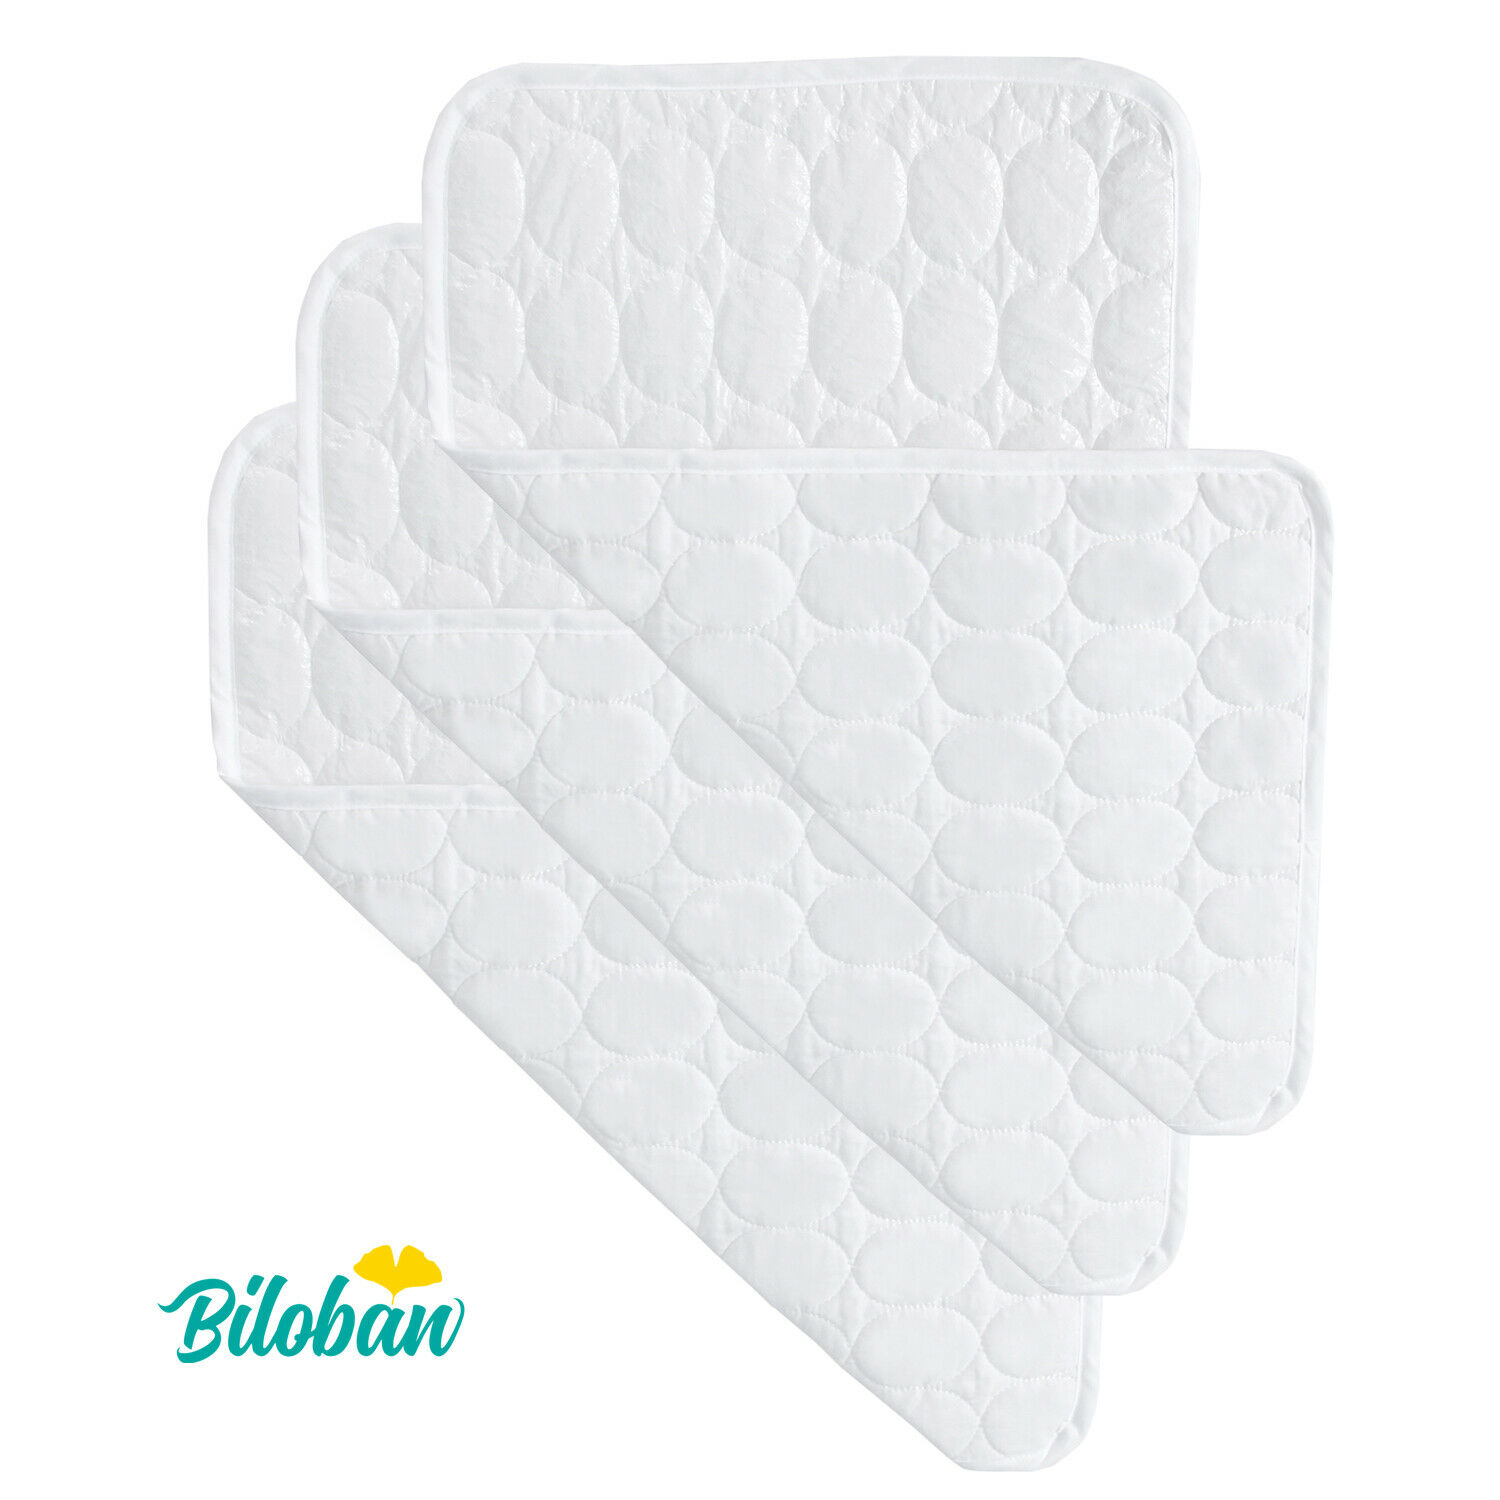 Quilted Cotton Waterproof Diaper Changing Pad Cover Liner 3